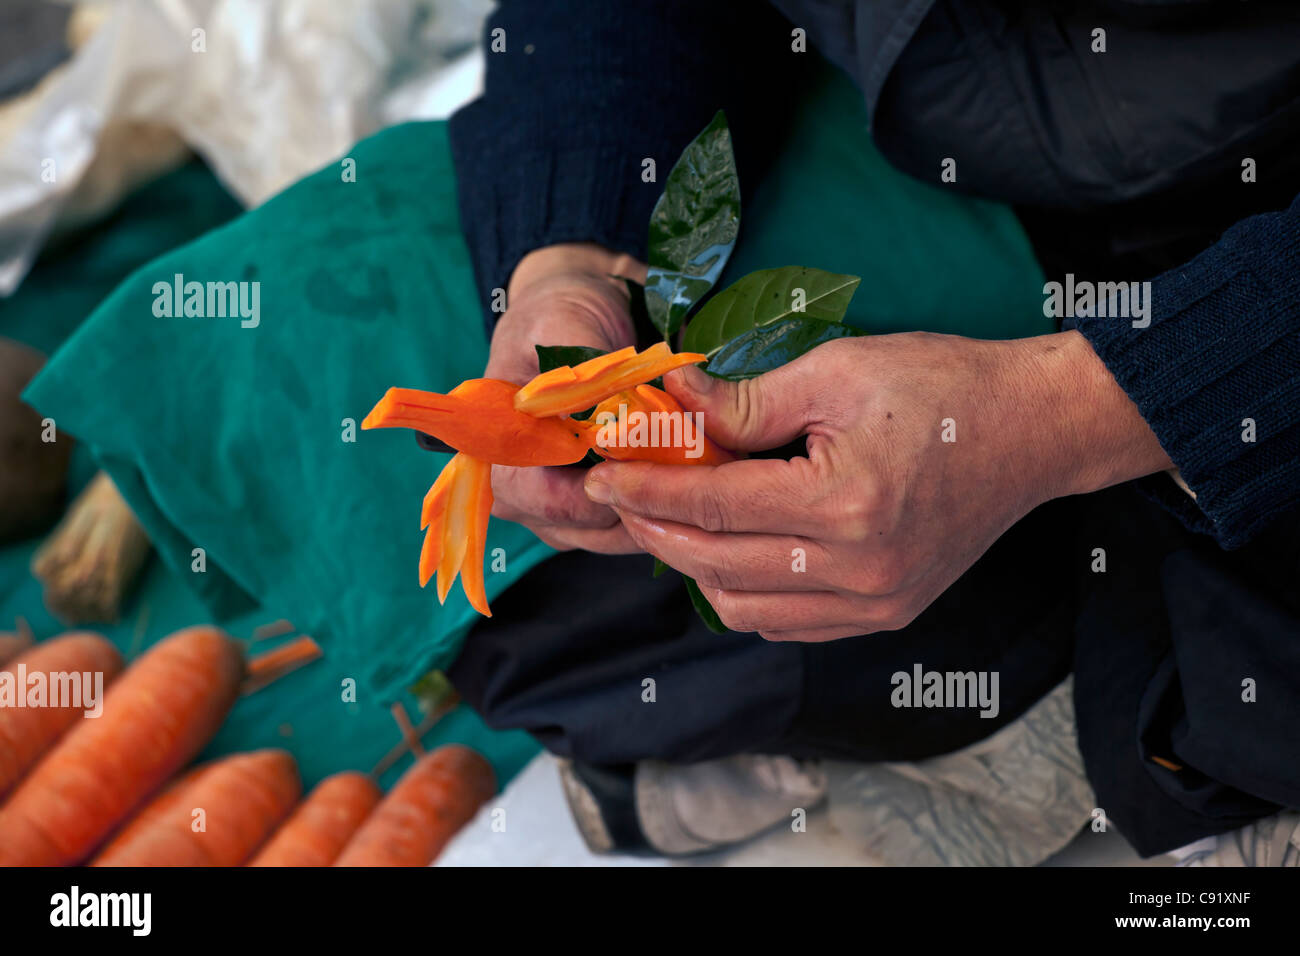 Food sculptor in the Milanese pedestrian, Lombardia, Italy - Stock Image